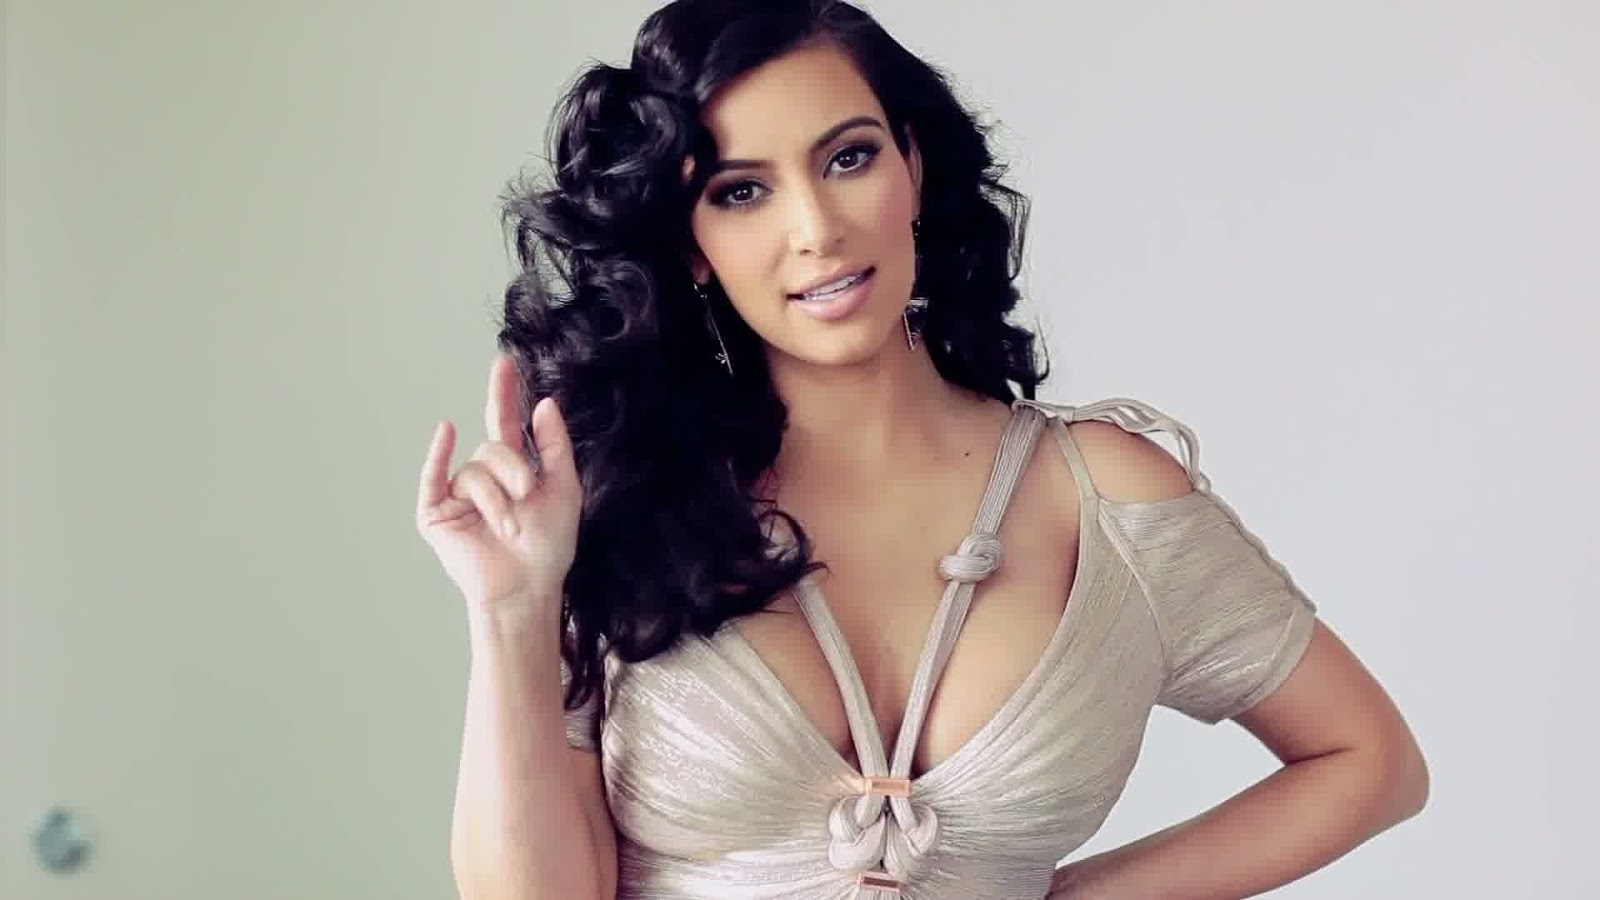 Kim Kardashian New Hot HD Wallpaper 2013  Hollywood Universe